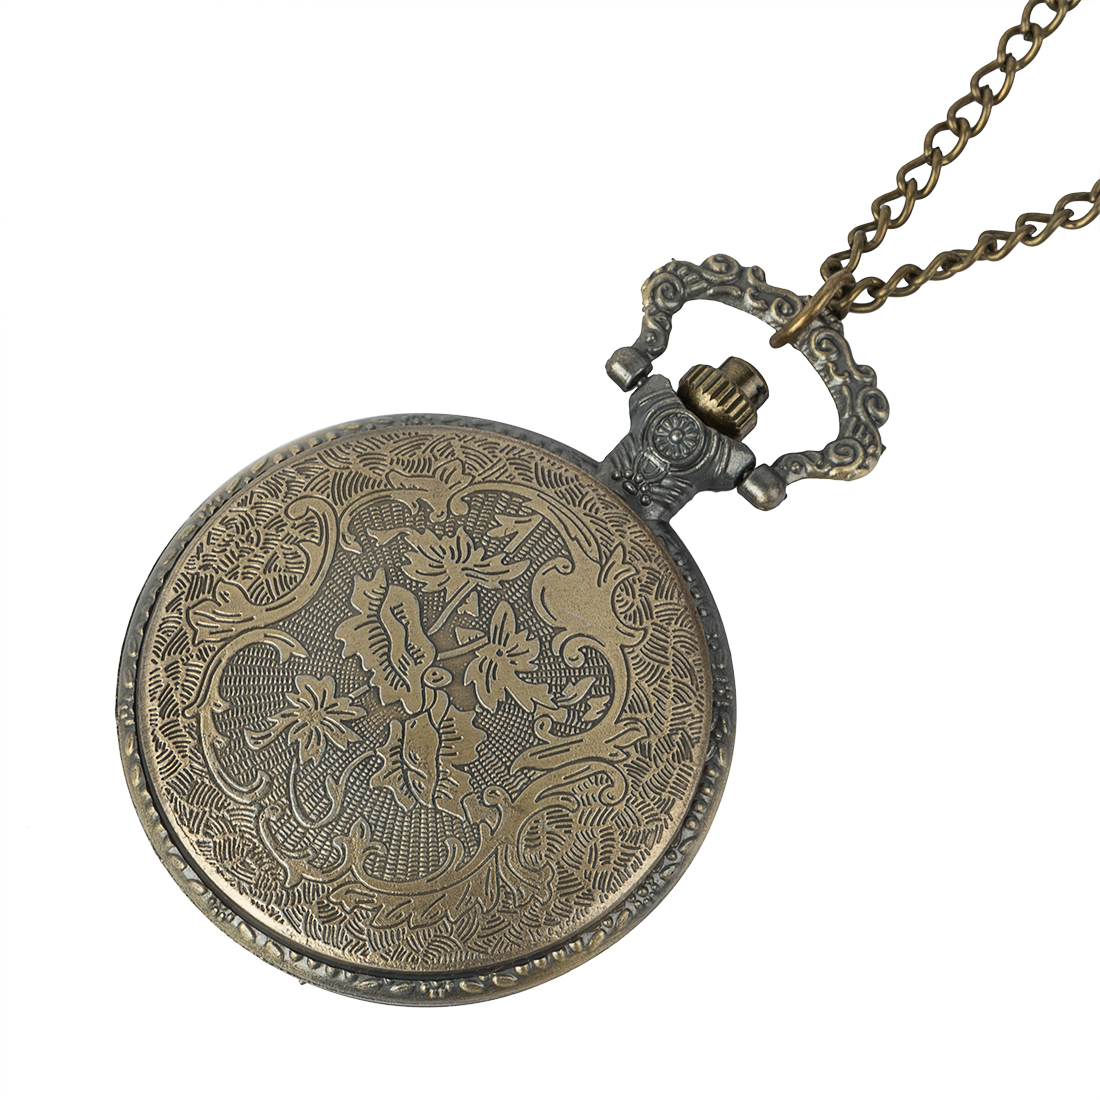 1Pcs Cindiry Brand Vintage Bronze Doctor Quartz Pocket Watch Fashion Who Style Best Gift Necklac Pendant Steampunk